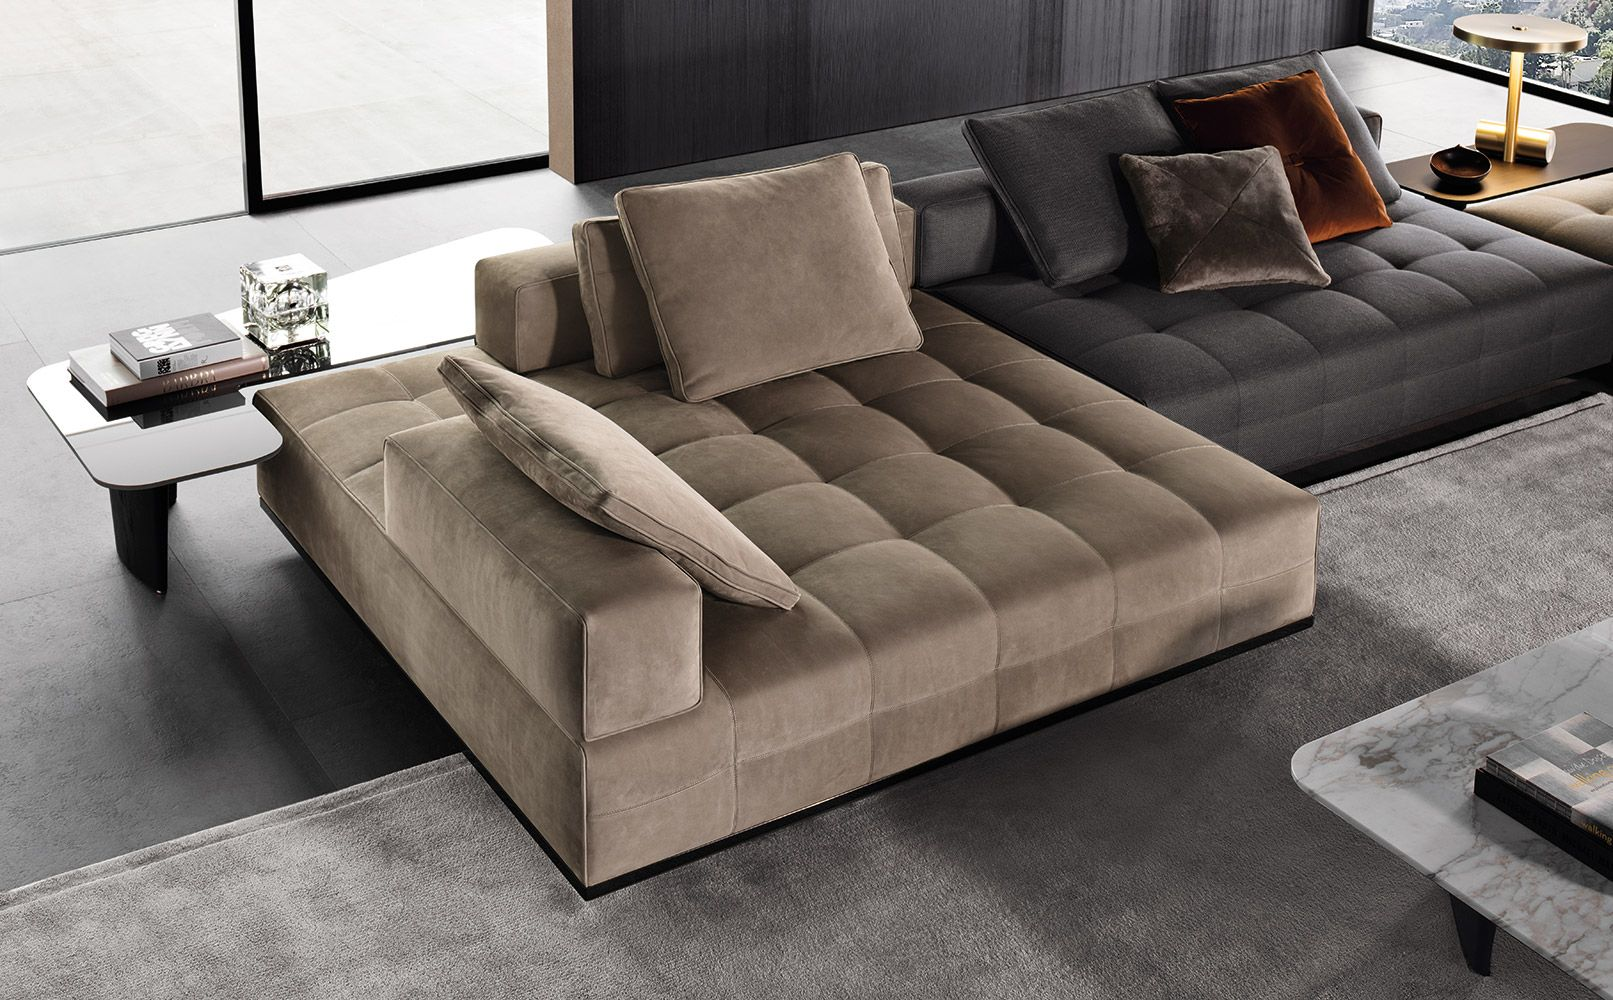 Lawrence Seating System Sofas En With Their Well Defined